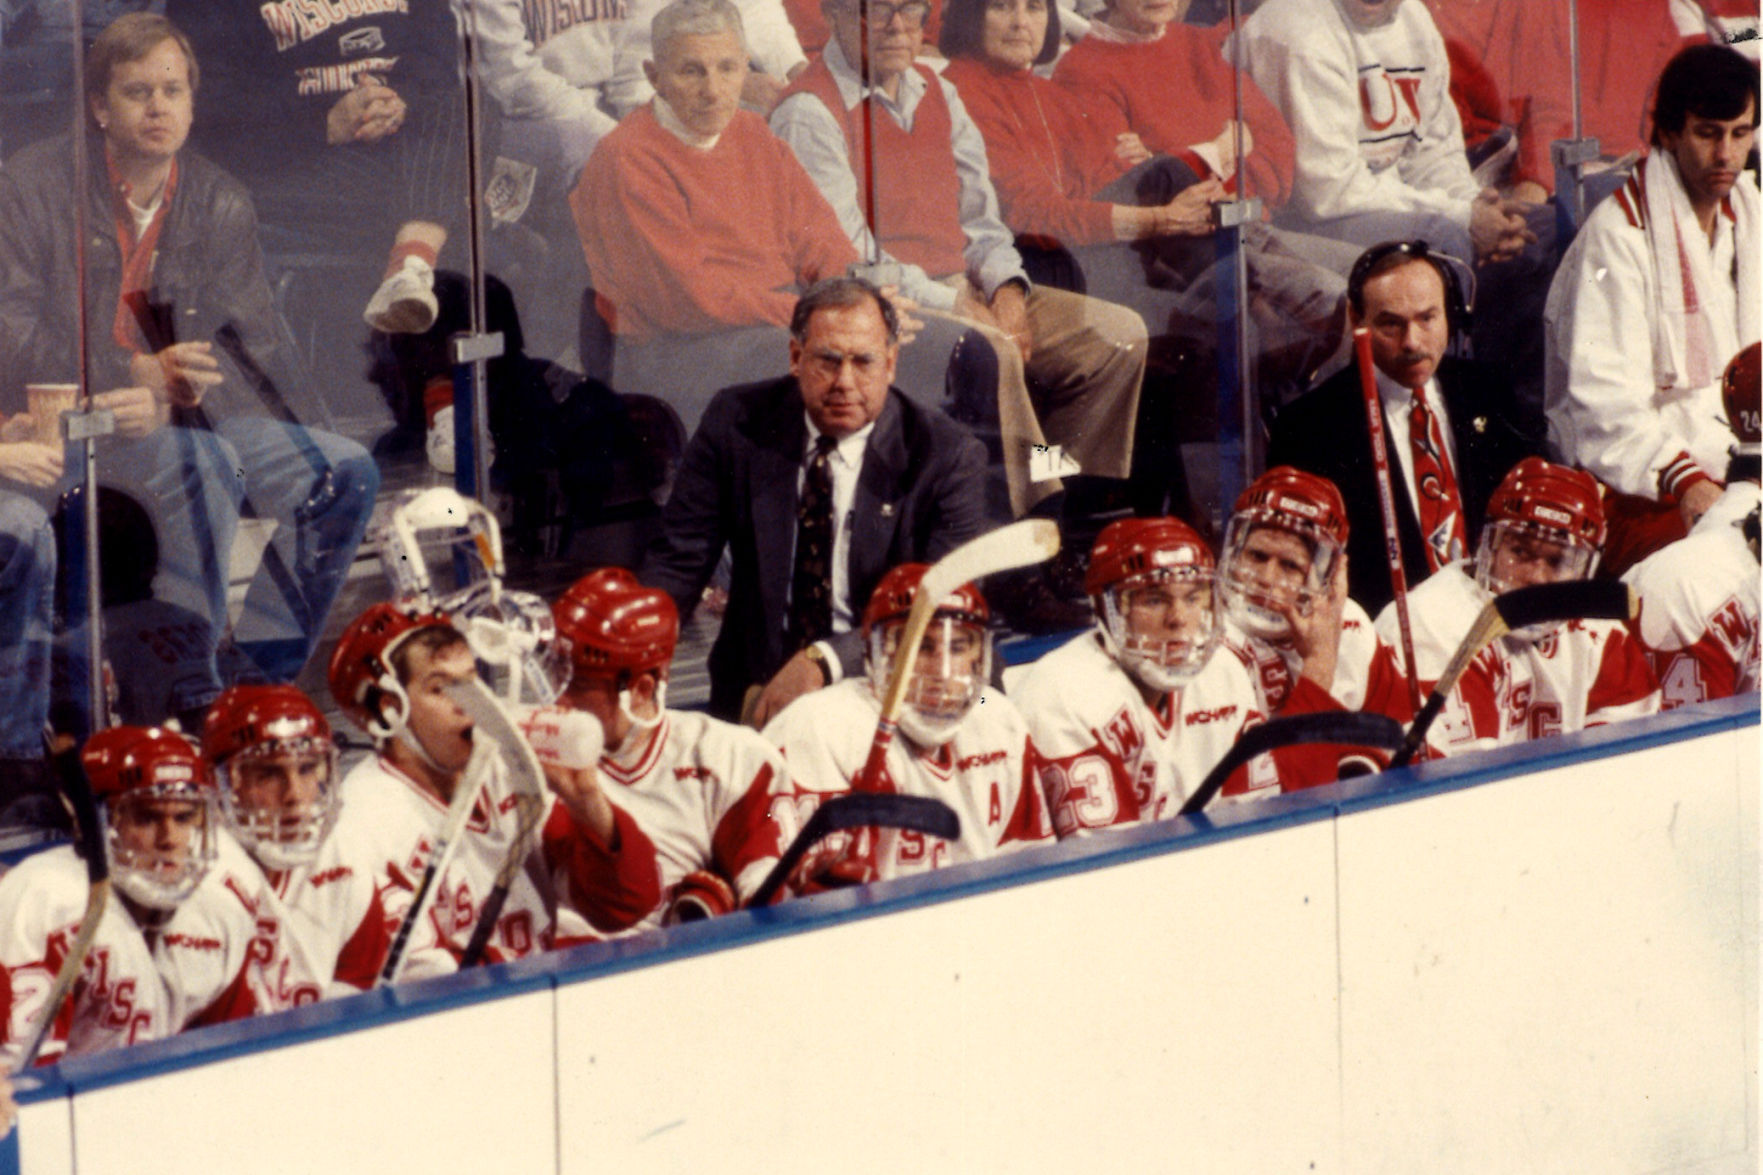 NCAA: Photos - Former Wisconsin Coach Jeff Sauer Through The Years